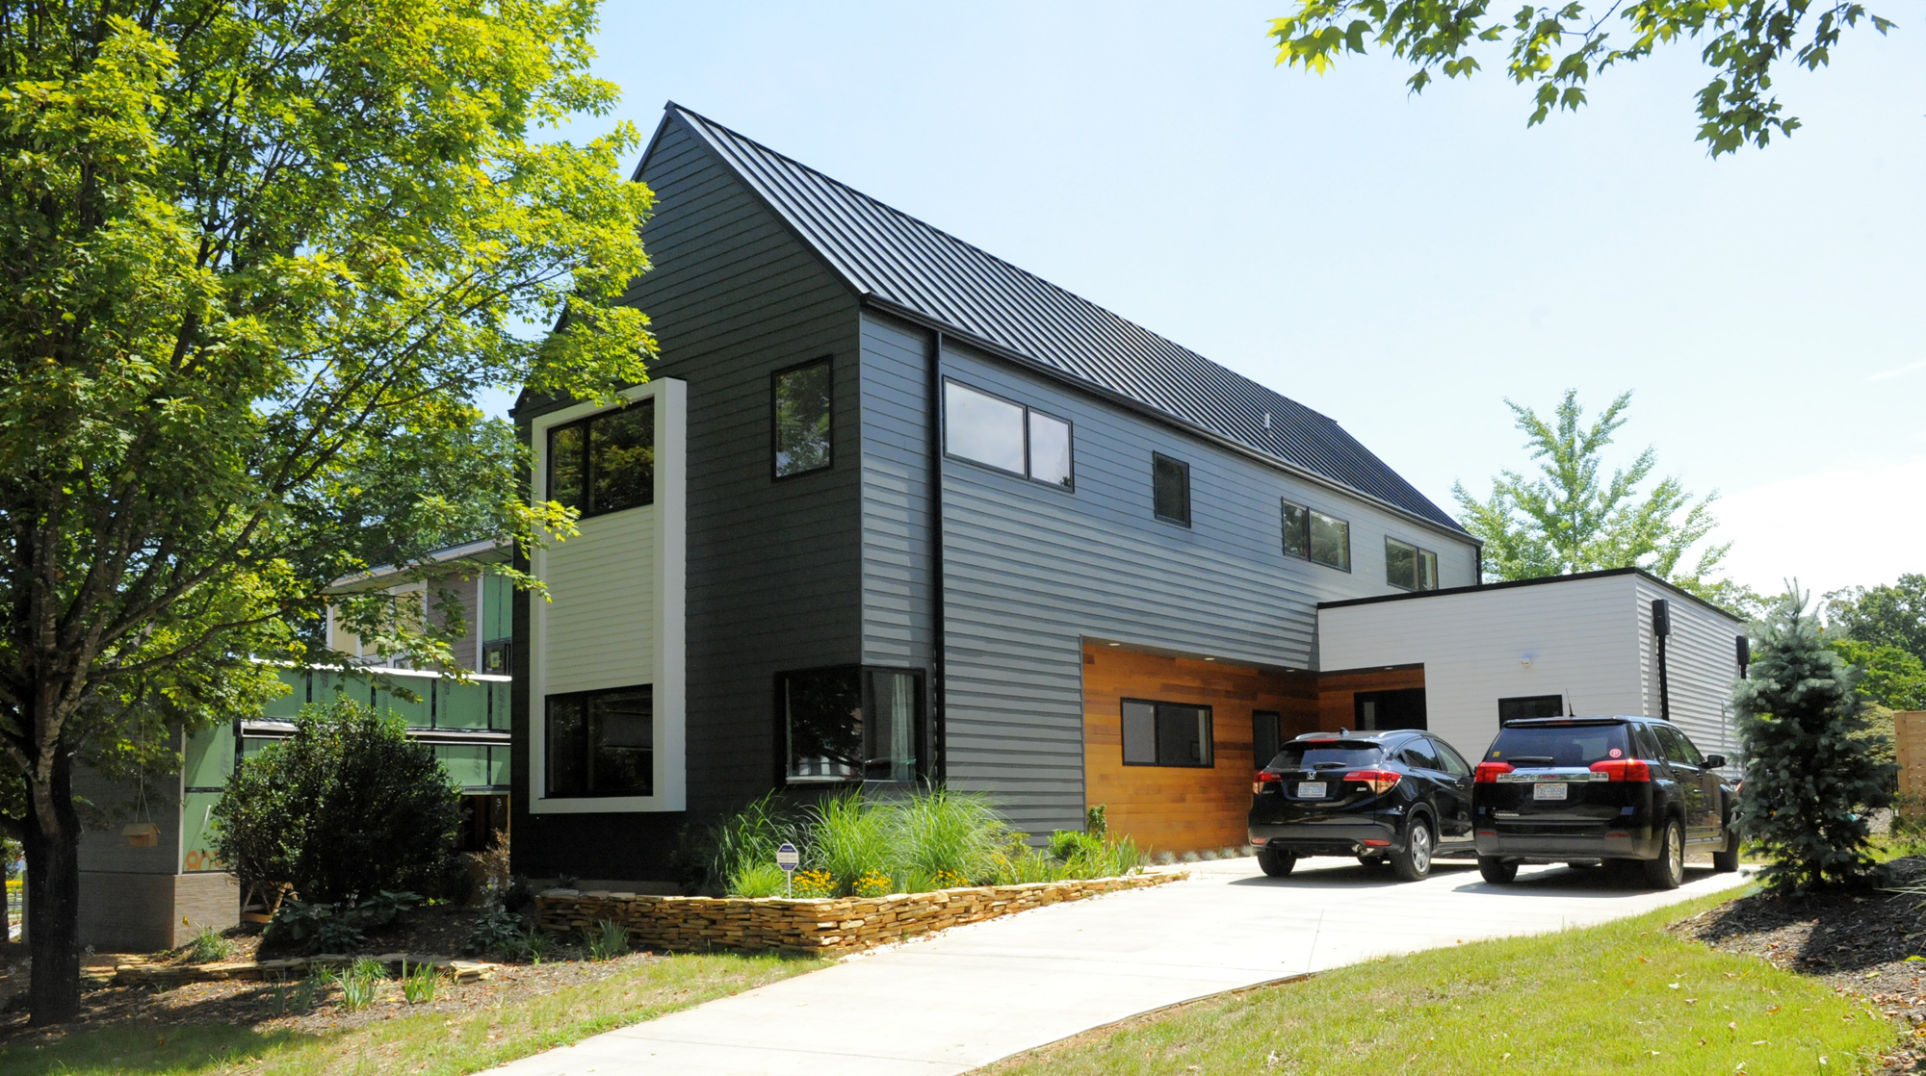 West Salem goes modern with 5 new homes Home journalnowcom